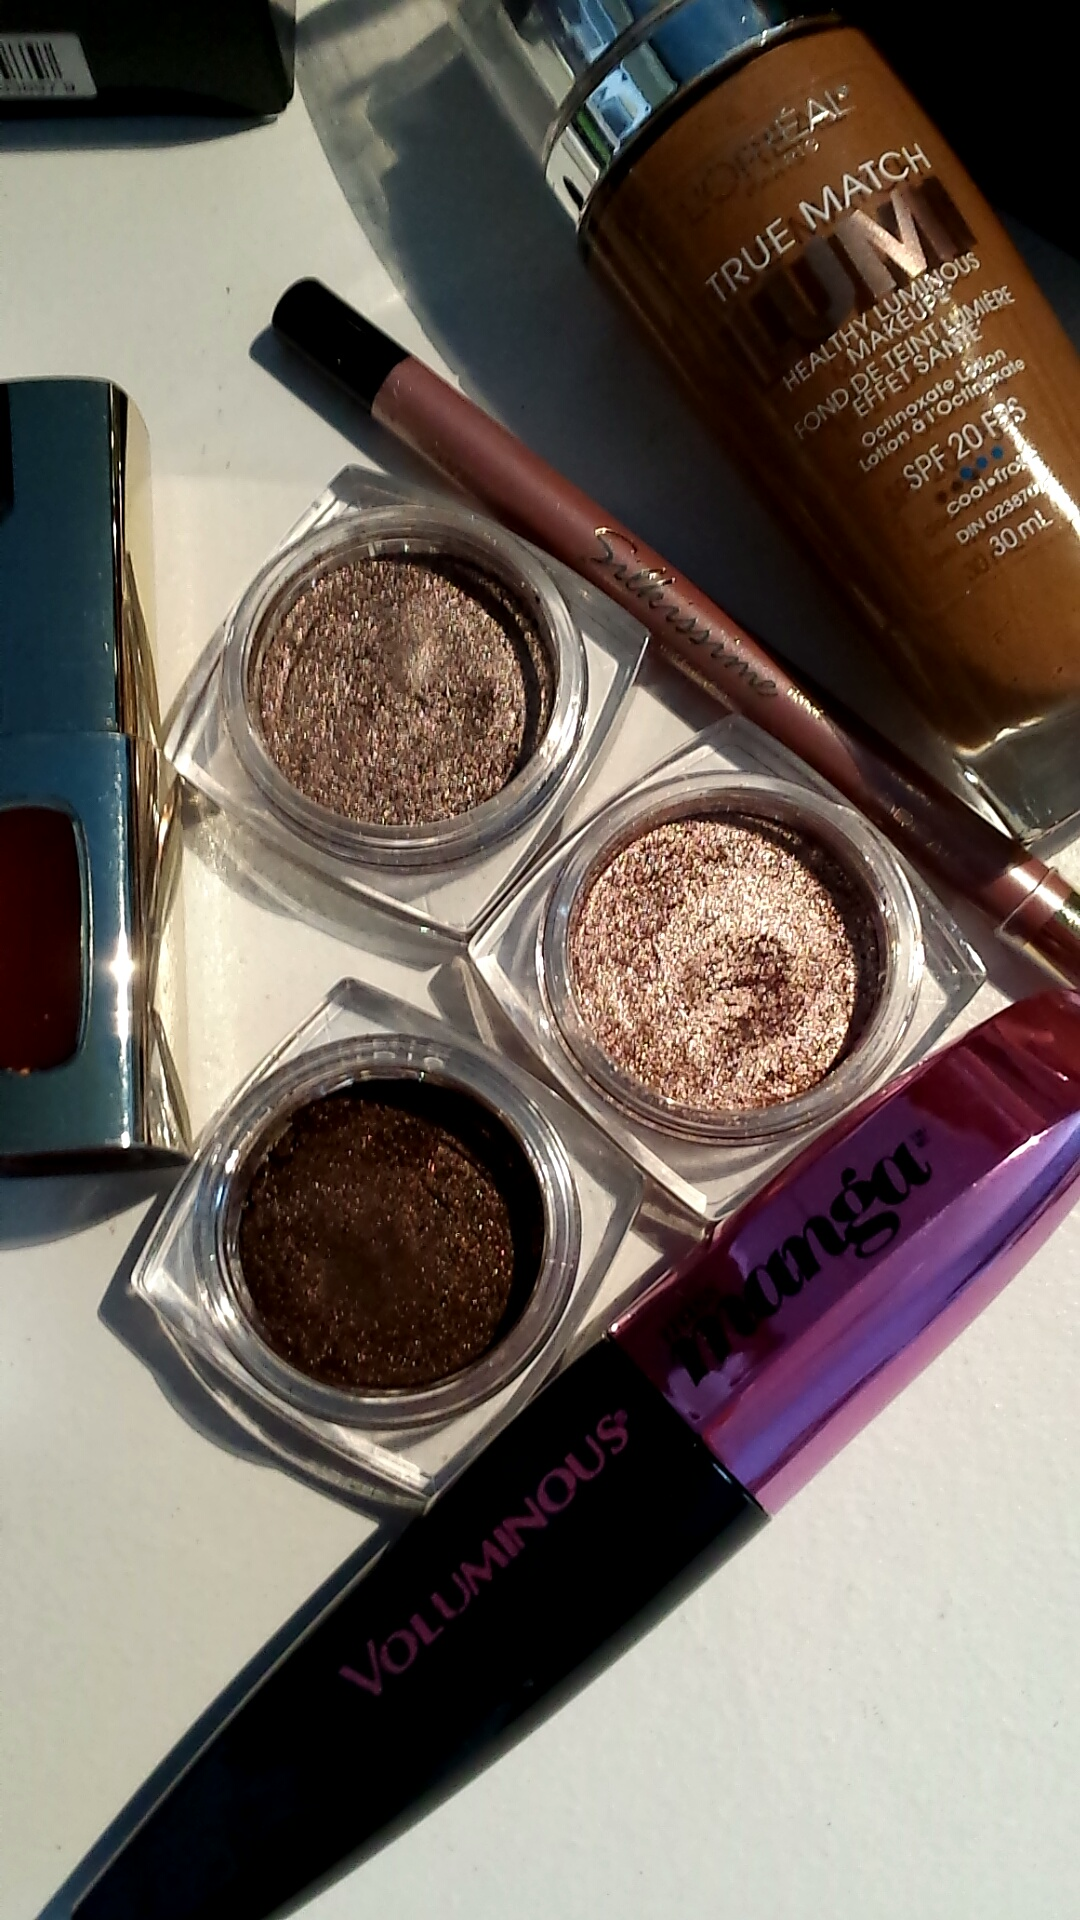 Top to Bottom: Bronzed Taupe, Amber Rush, Endless Chocolate